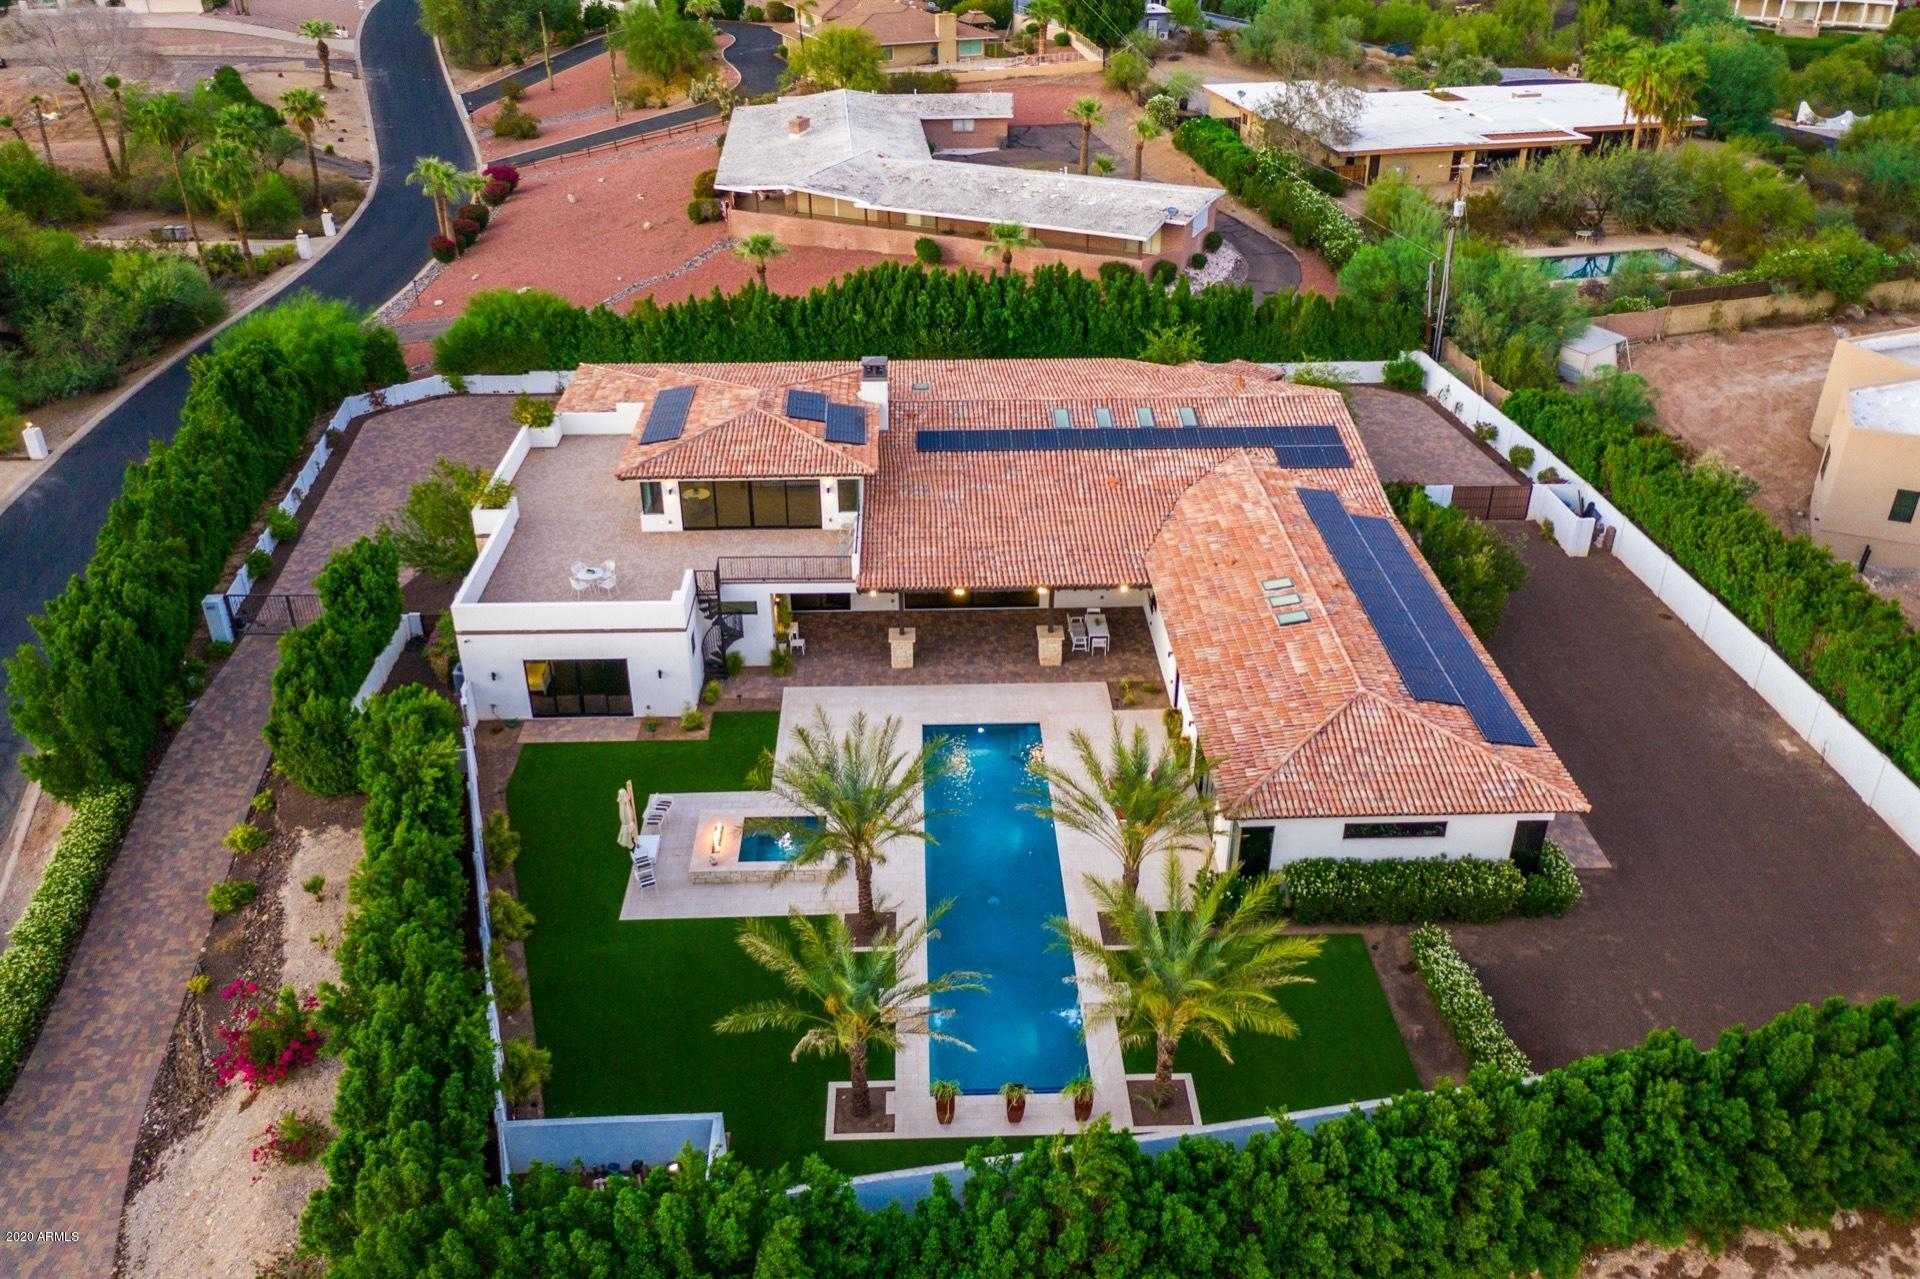 $4,590,000 - 5Br/8Ba - Home for Sale in Lincoln Heights 8, 12-25, 31-44, Paradise Valley